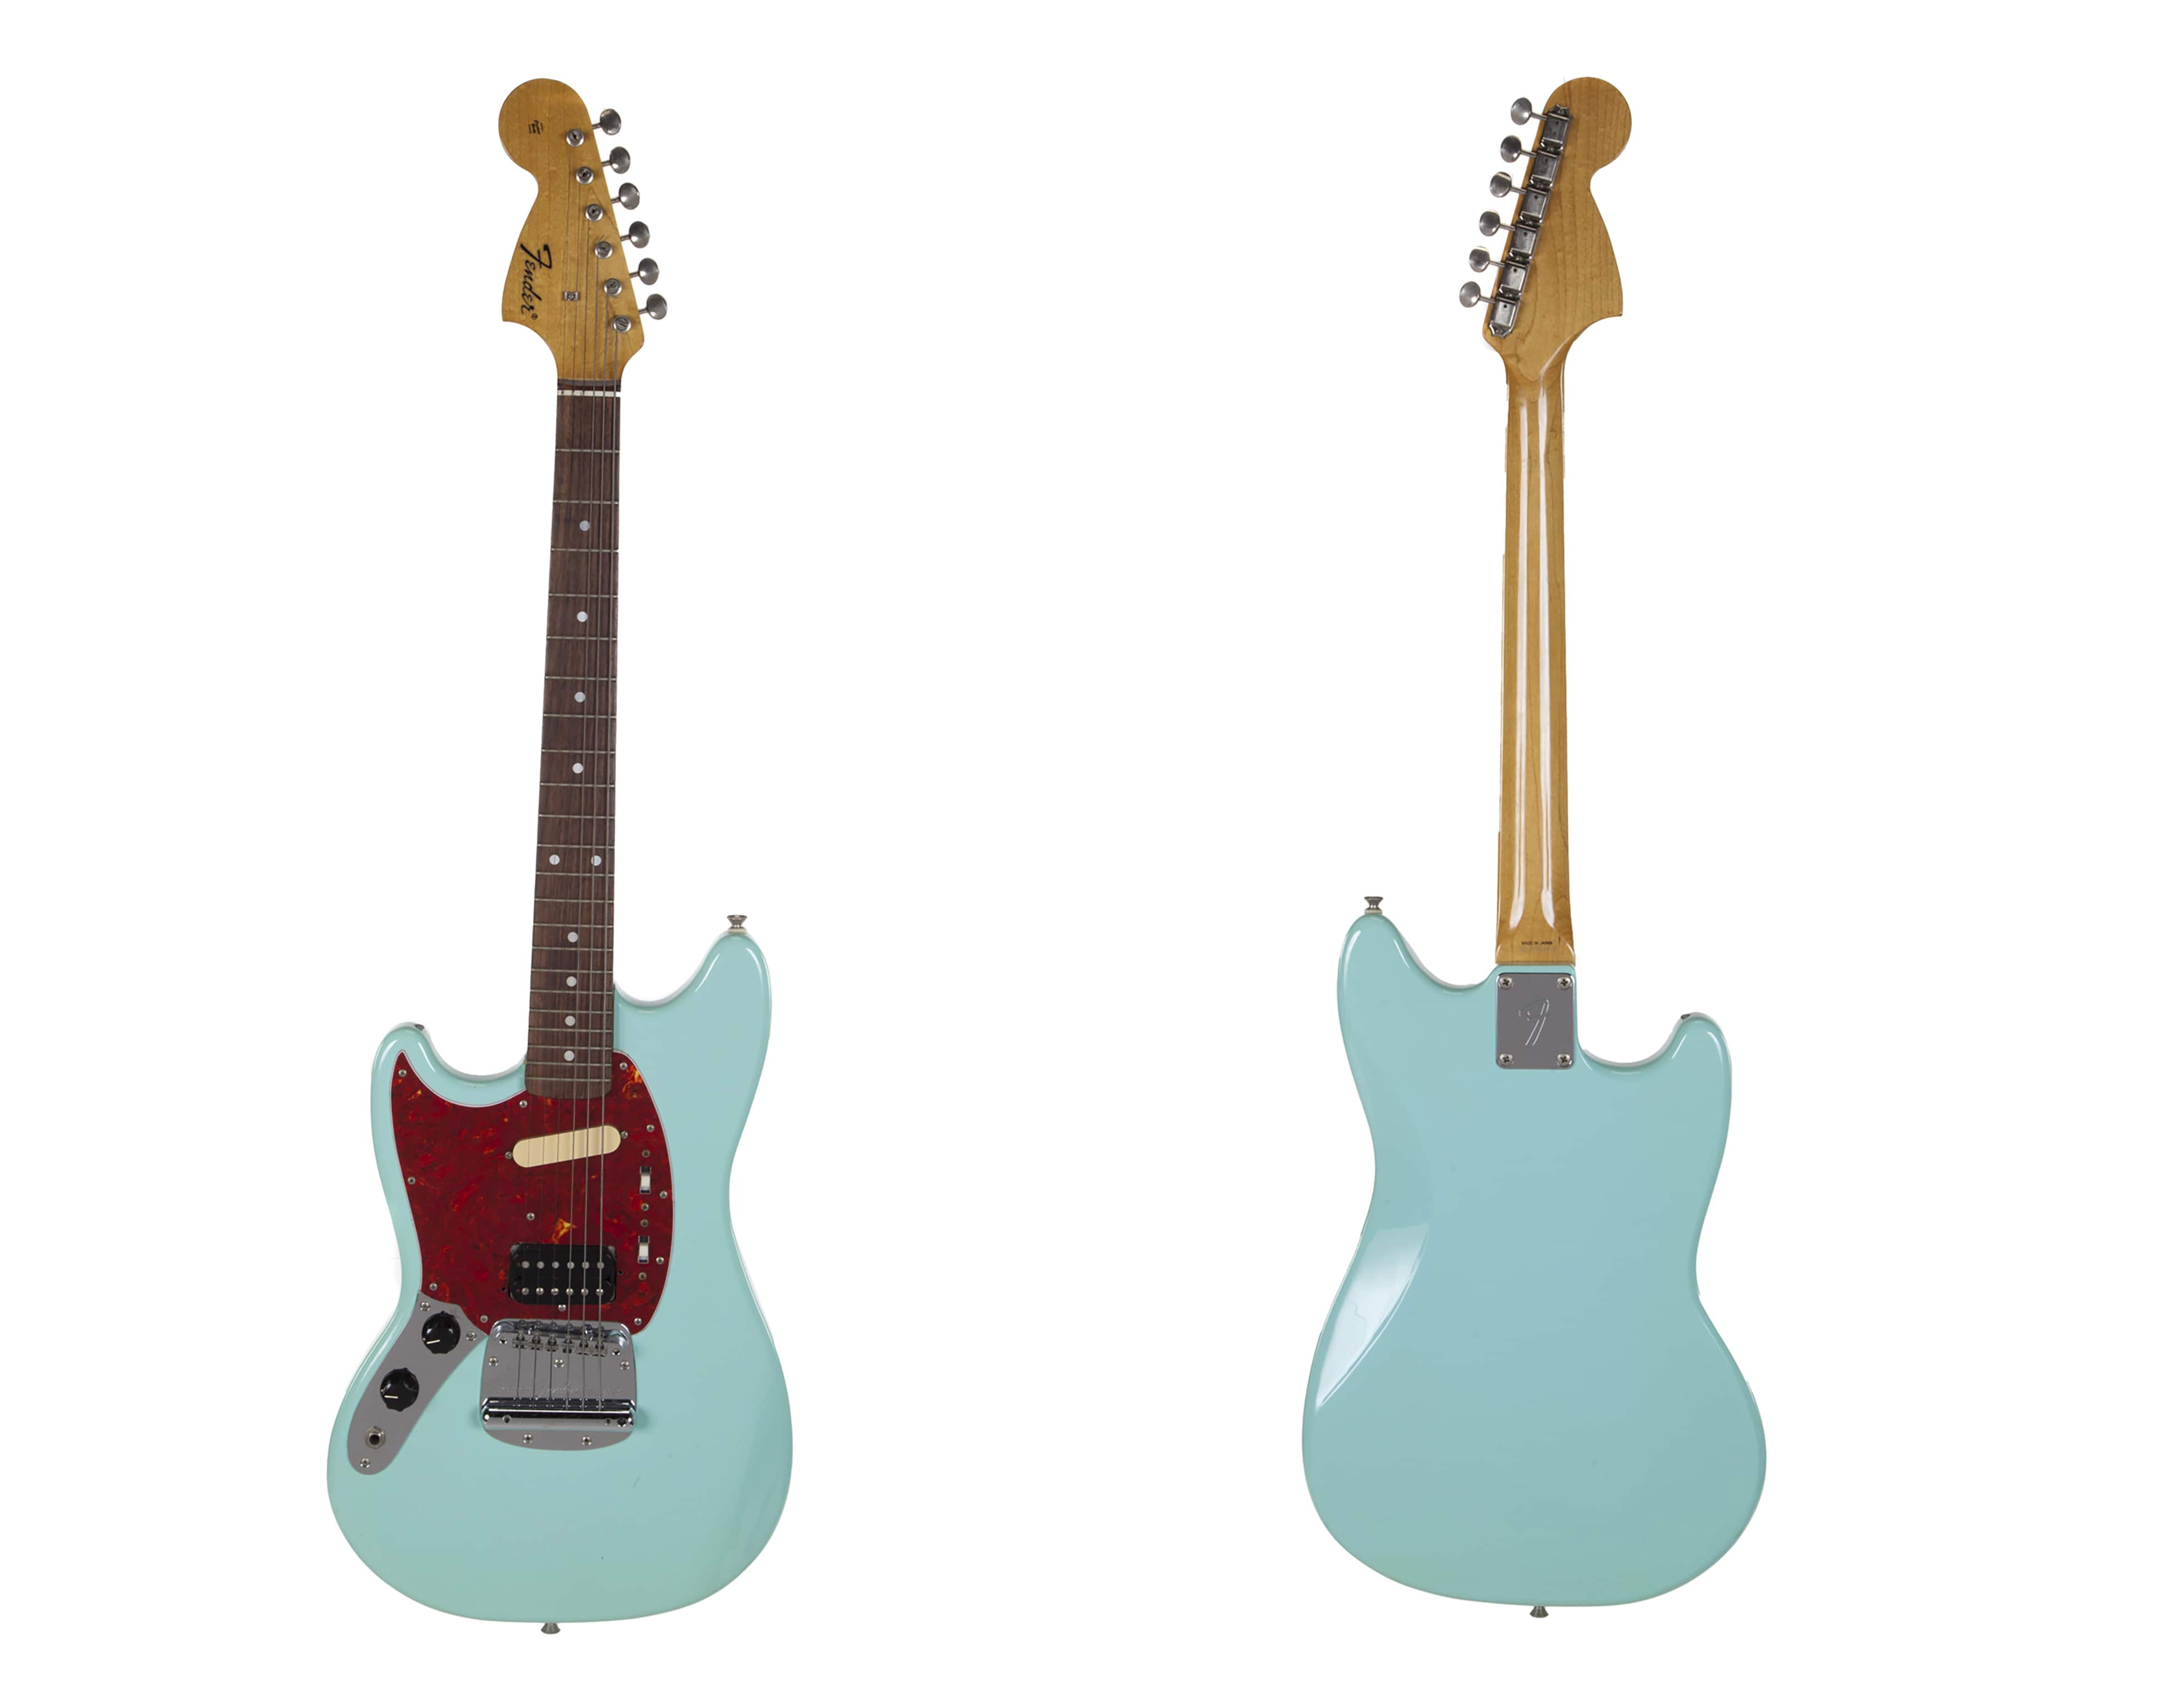 Photo of the front and back of a turquoise-bodied Fender guitar